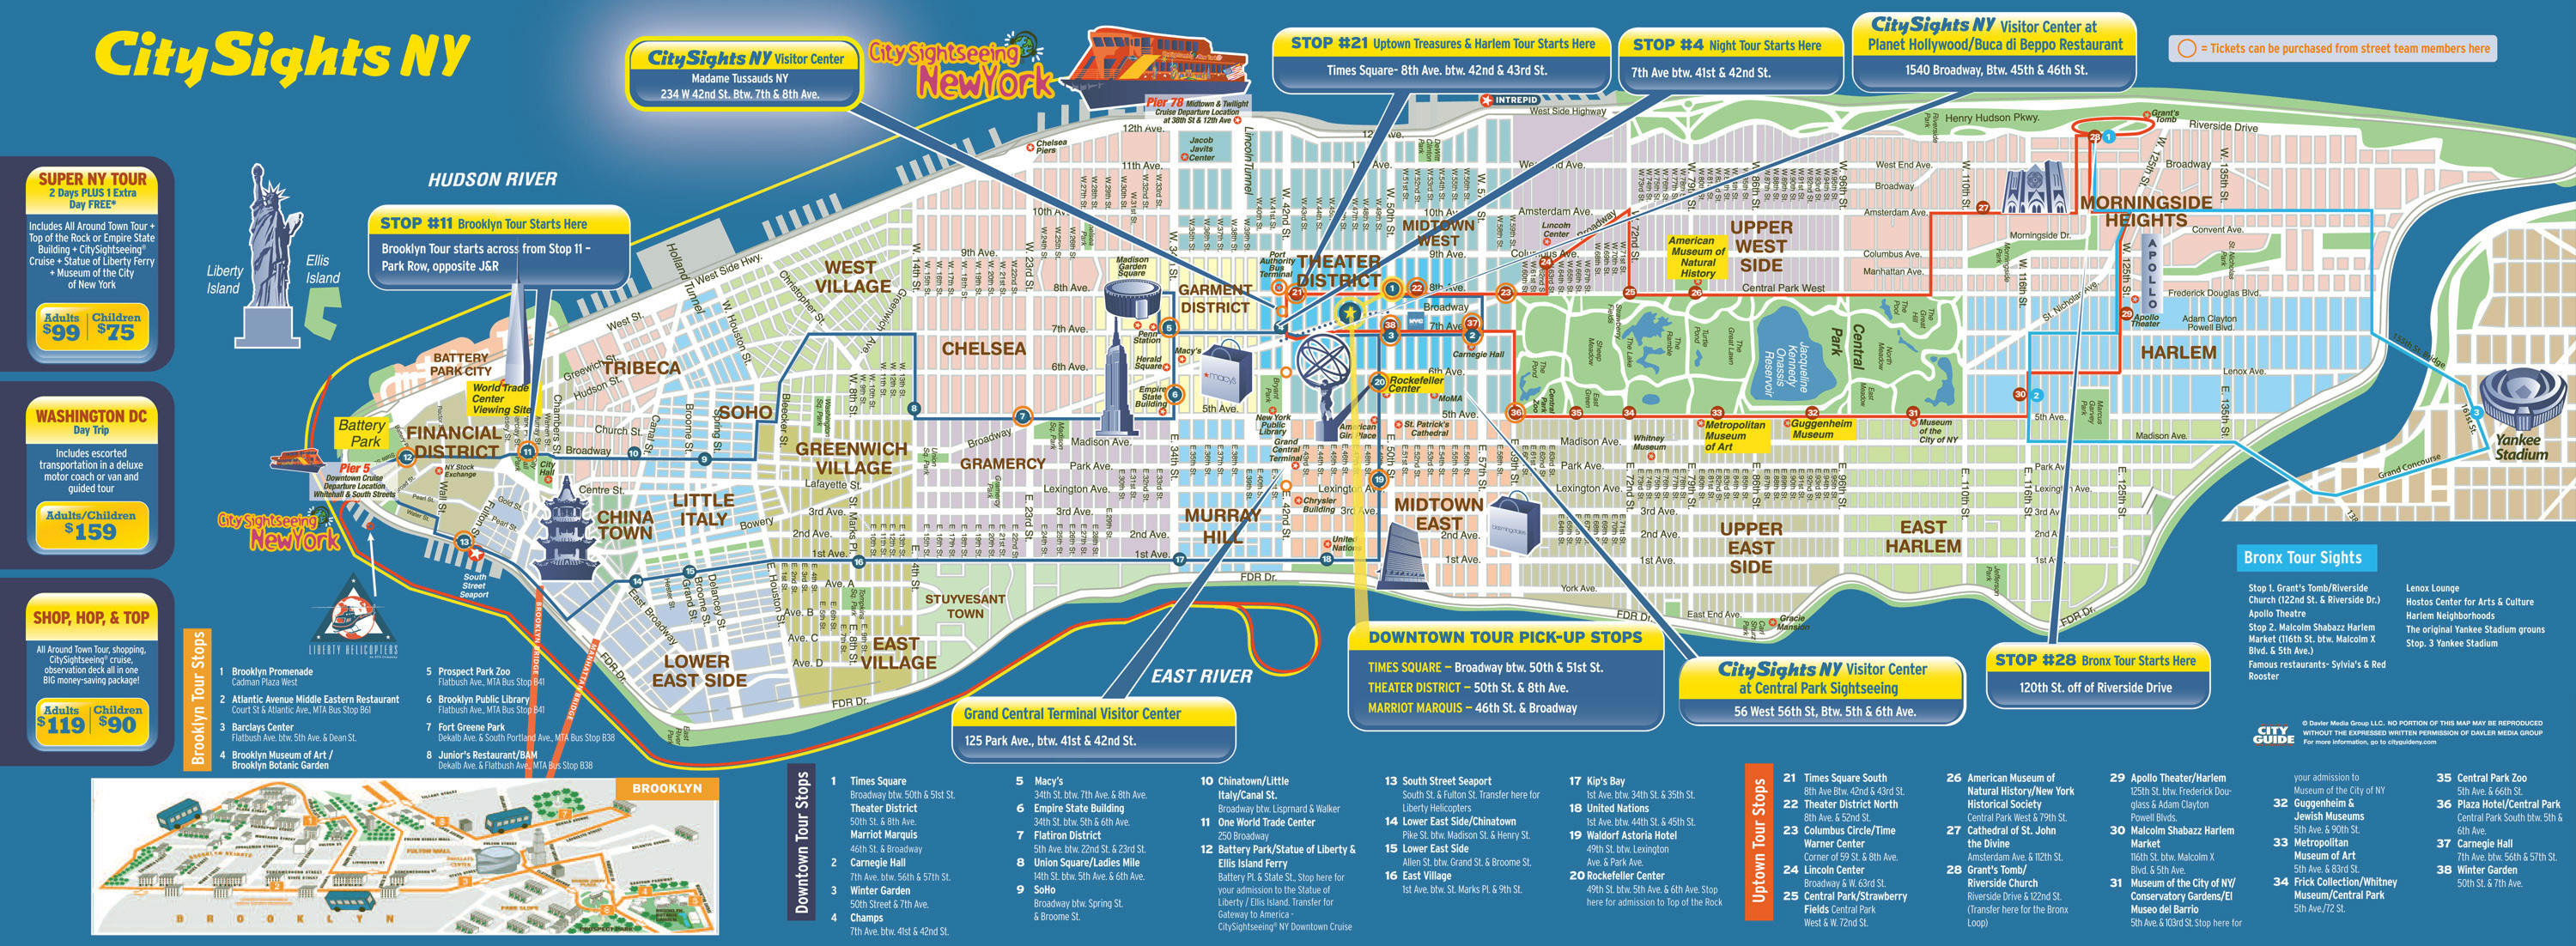 Large Detailed City Sights Map Of Manhattan New York City NYmap - Midtown new york map